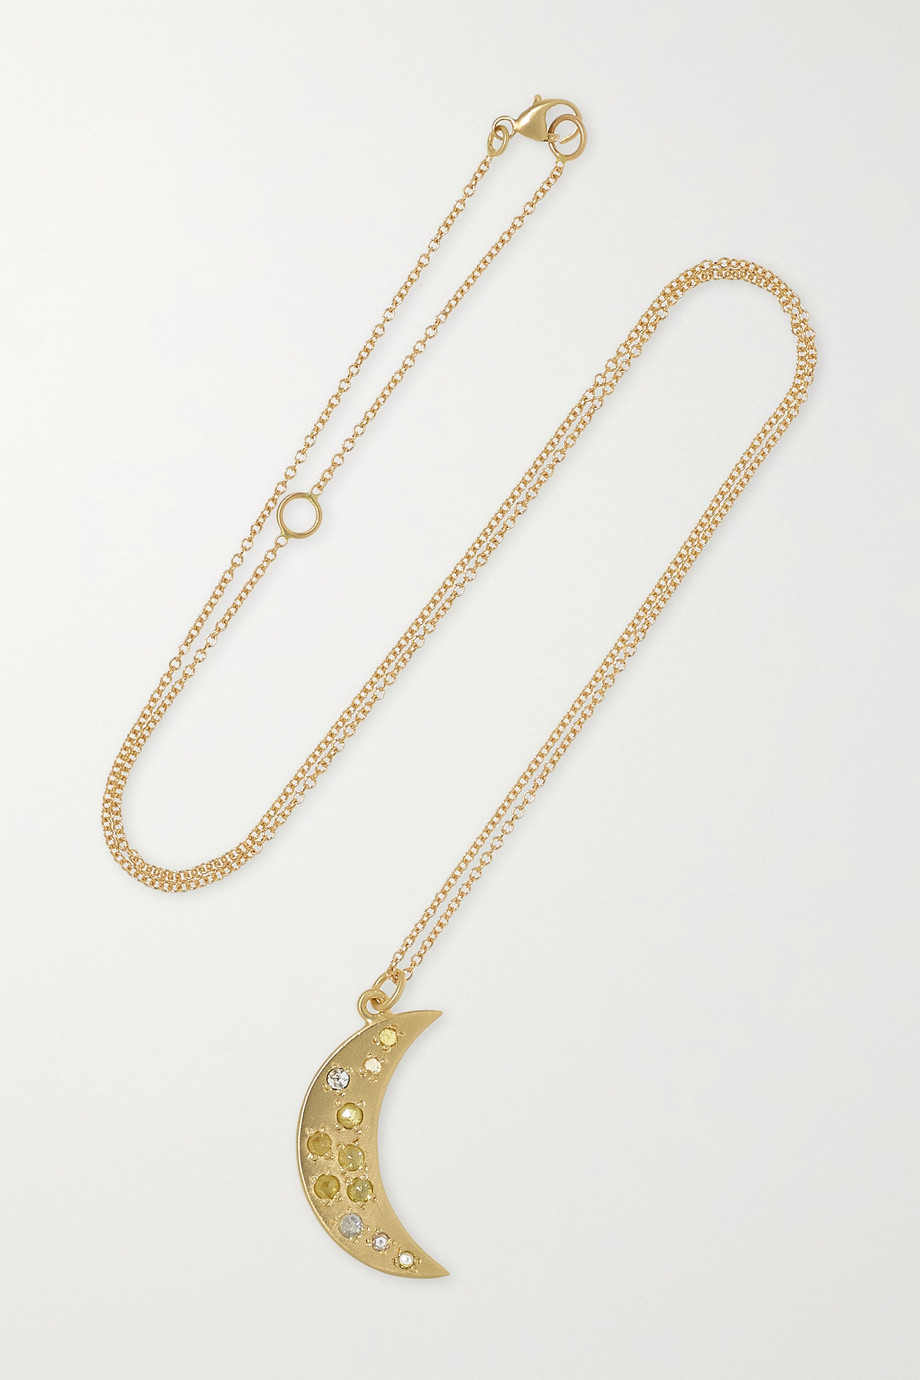 Brooke Gregson Crescent 14-karat gold diamond necklace